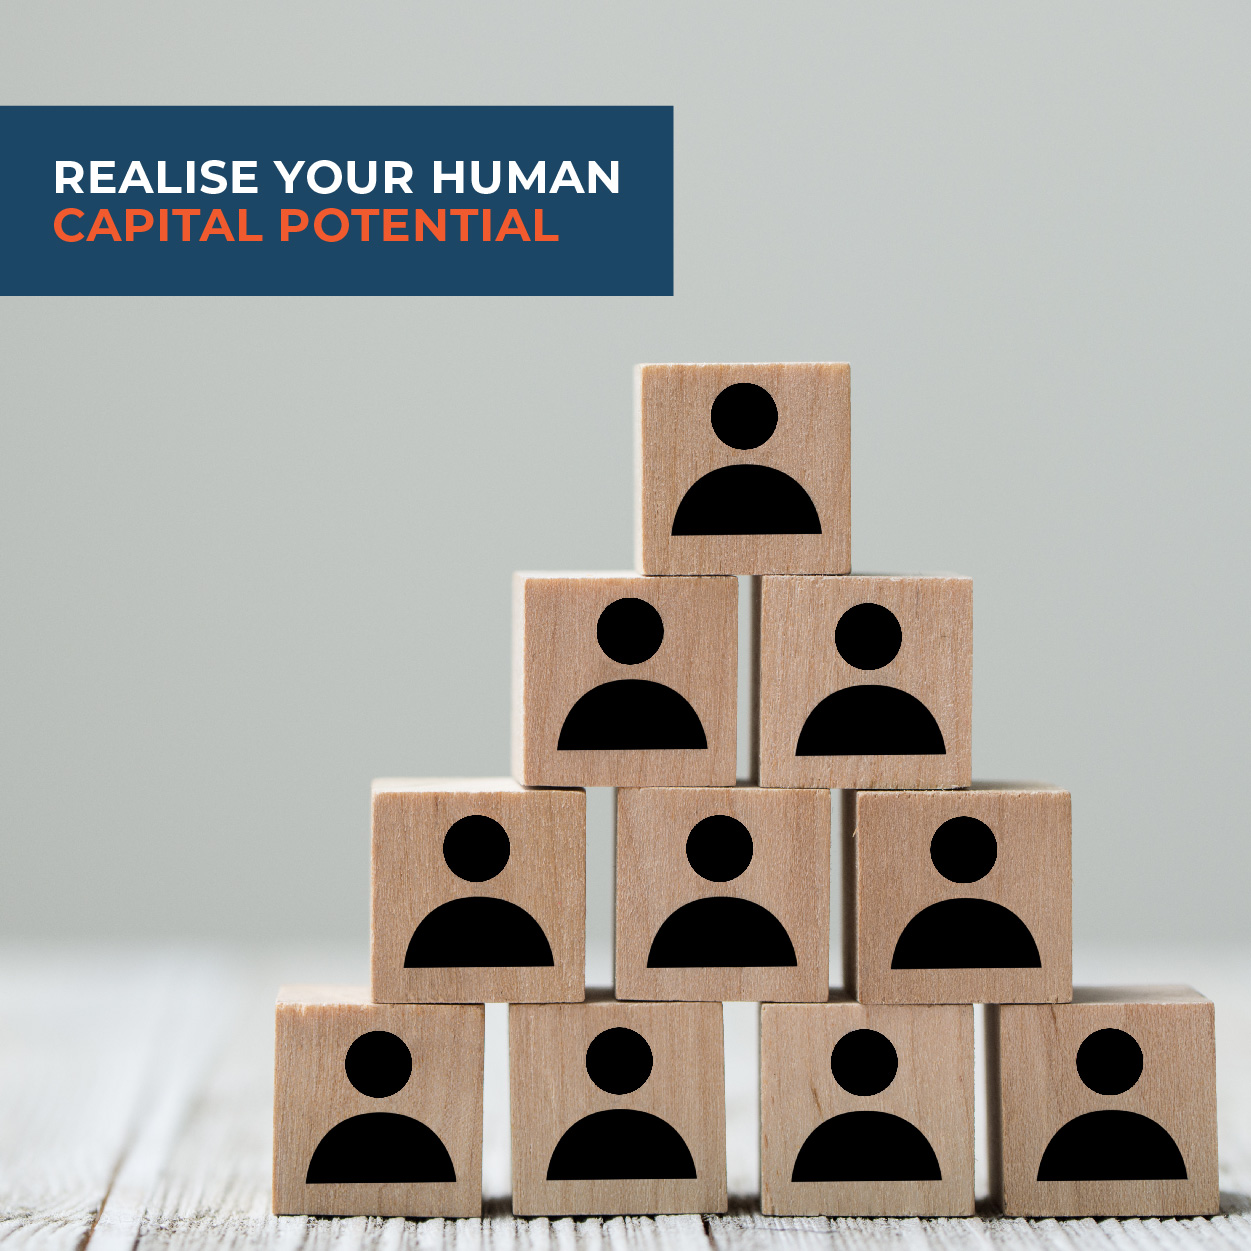 Realise your human capital potential